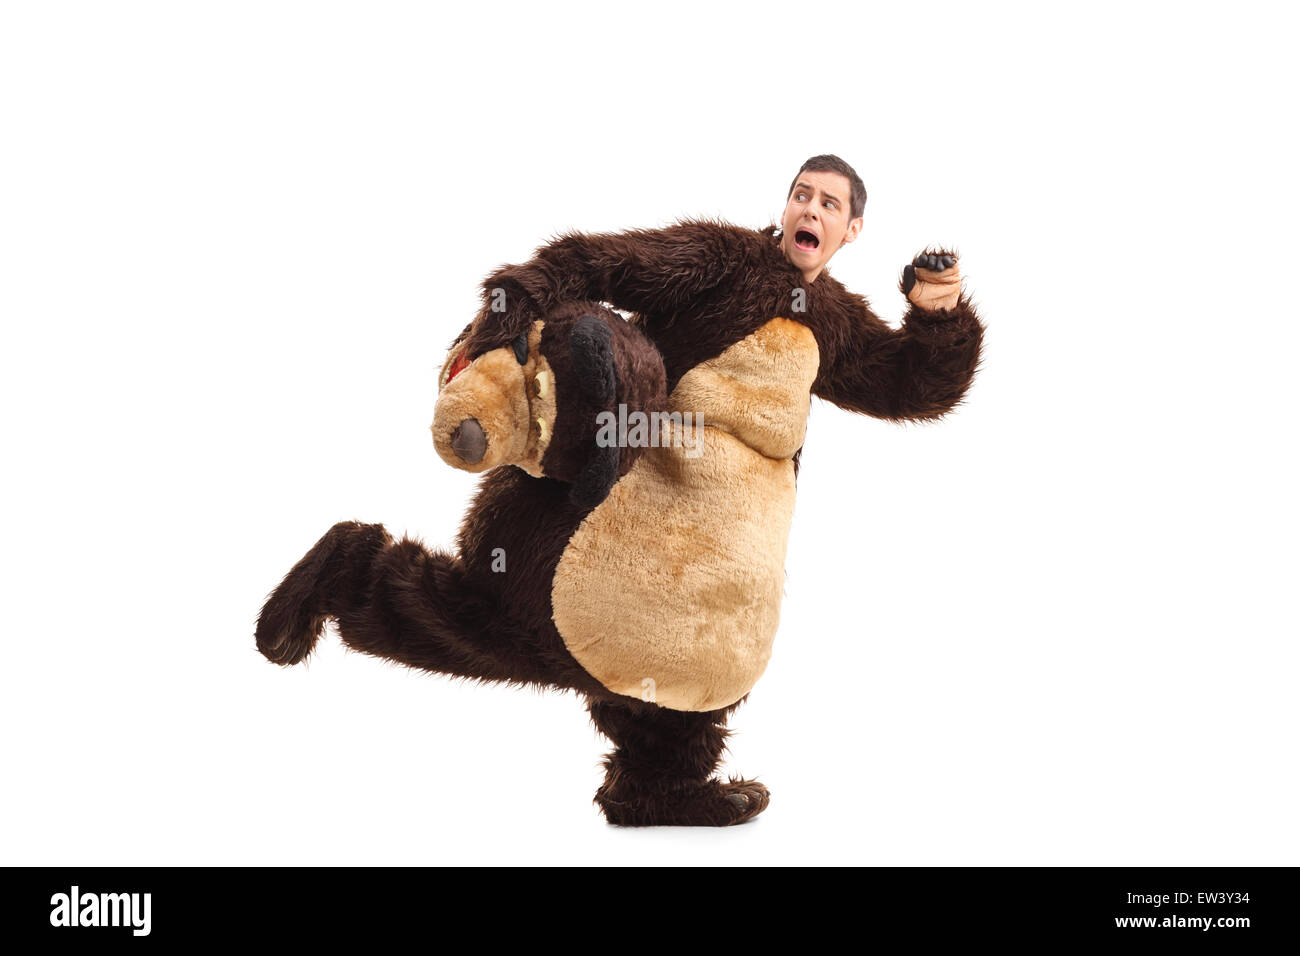 Terrified young man in a bear costume running away from something isolated on white background Stock Photo